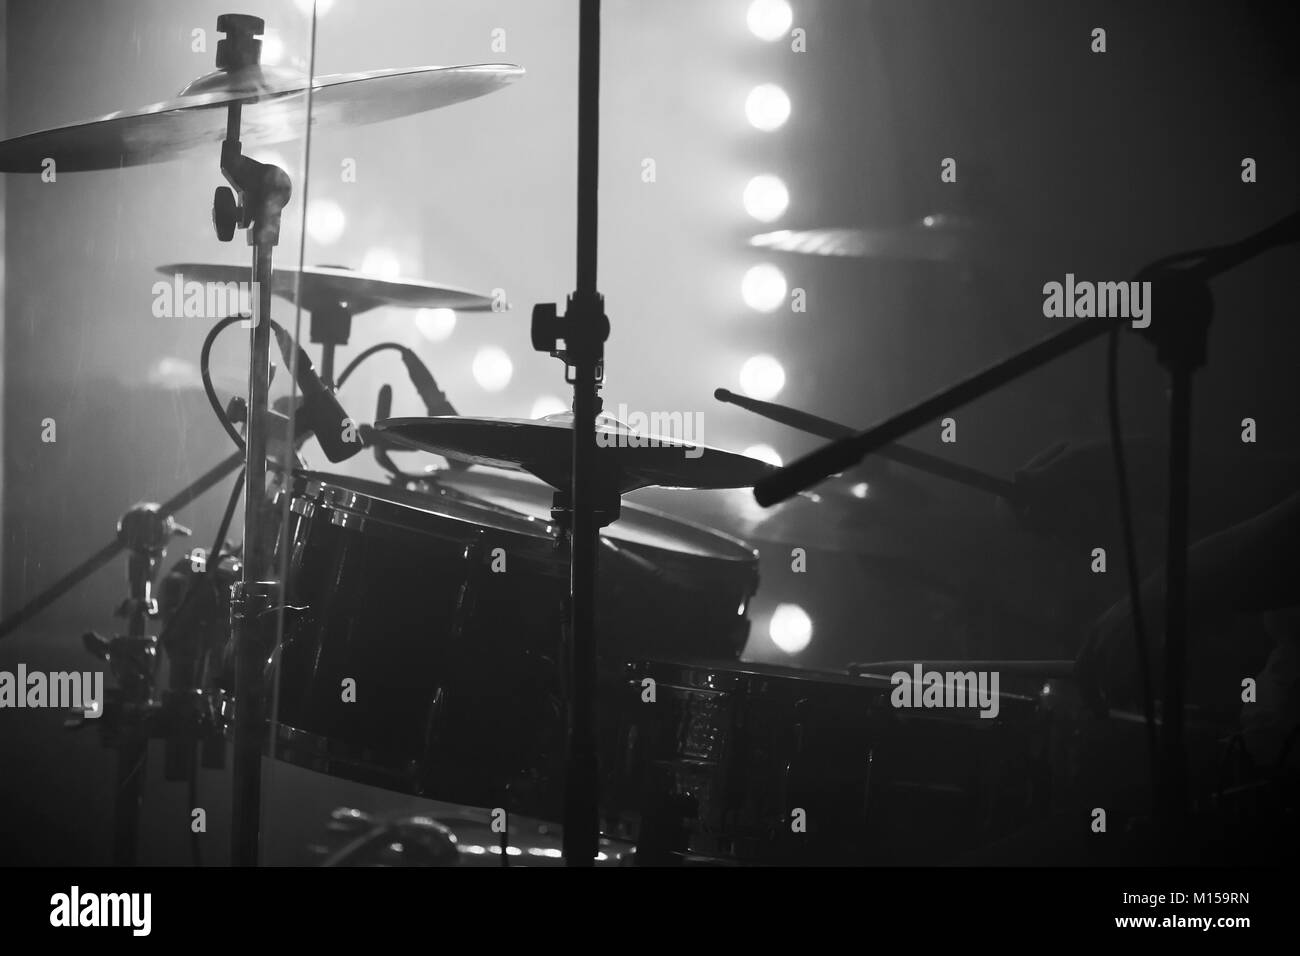 Live Music Photo Drum Set With Cymbals And Stage Lights On A Stock